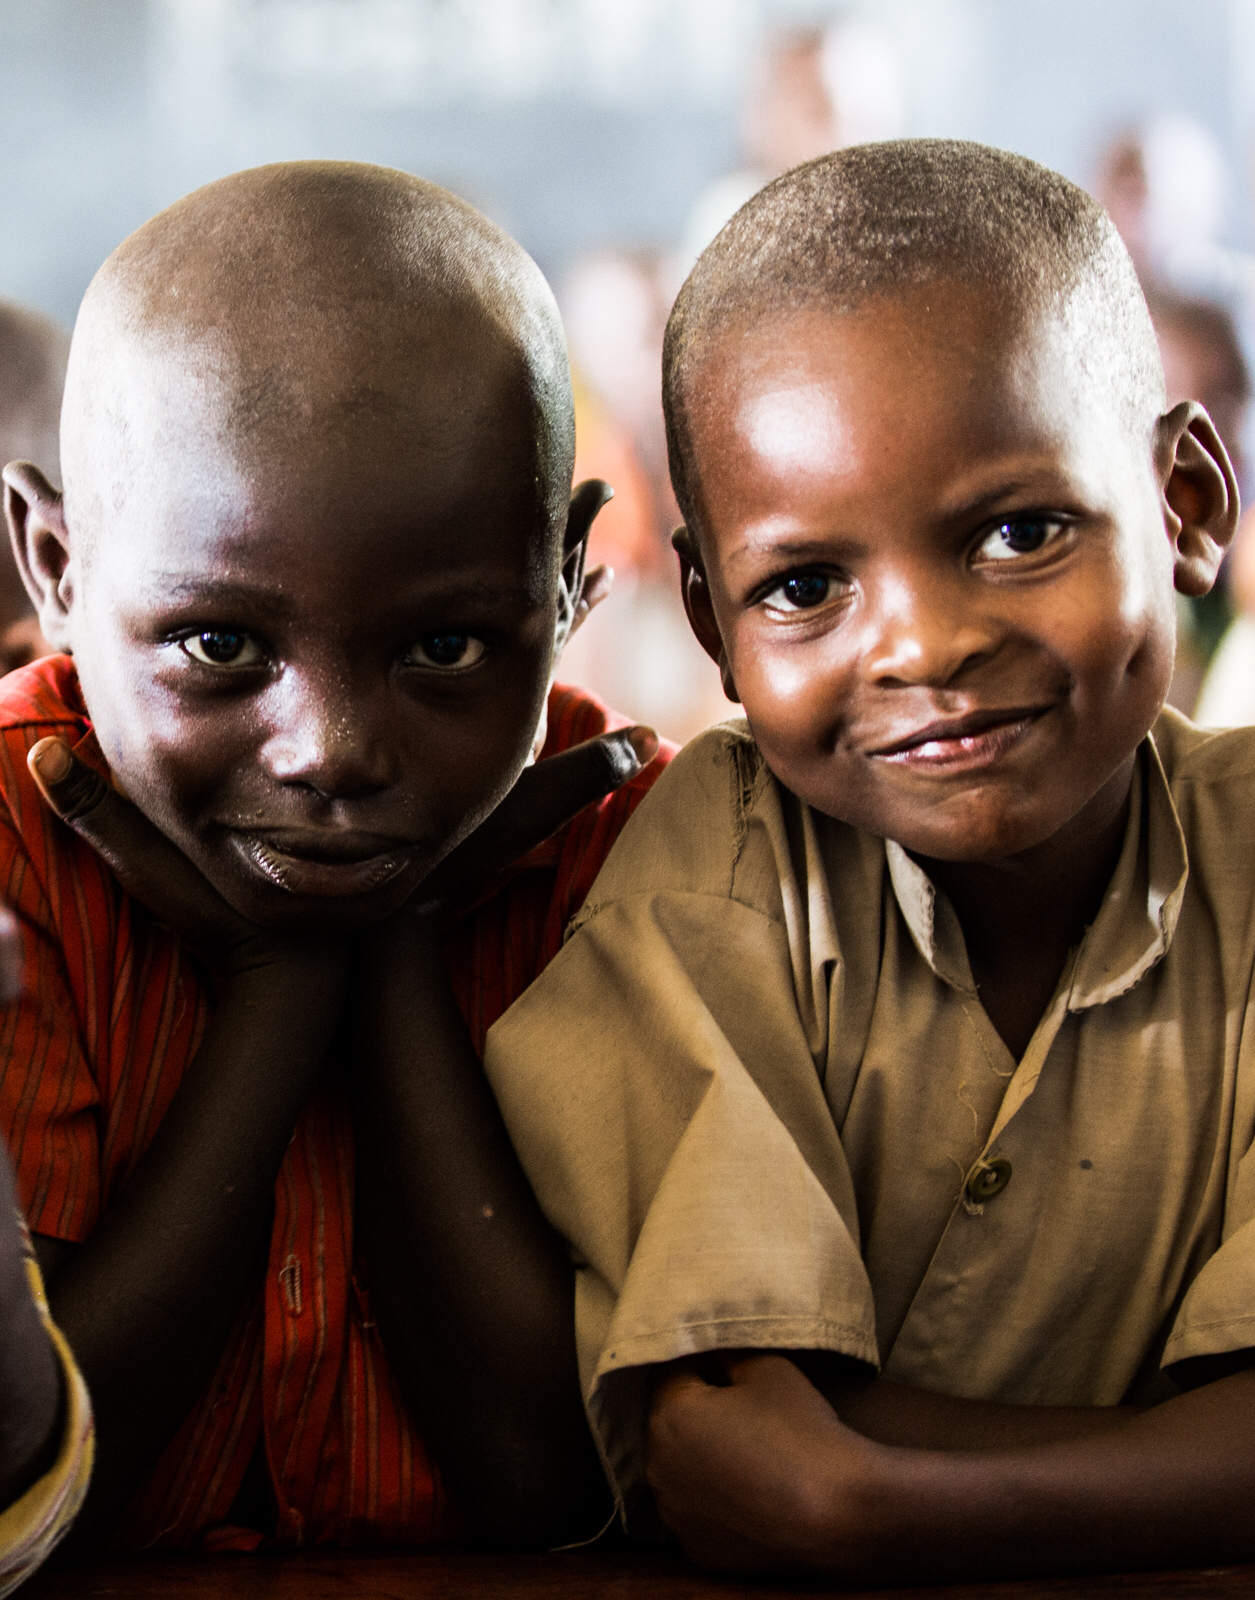 two-boys-at-mitonto-primary-school-in-burundi-the-one-at-right-wearing-the-school-uniform-by-to-led_t20_R7RXkJ.jpg